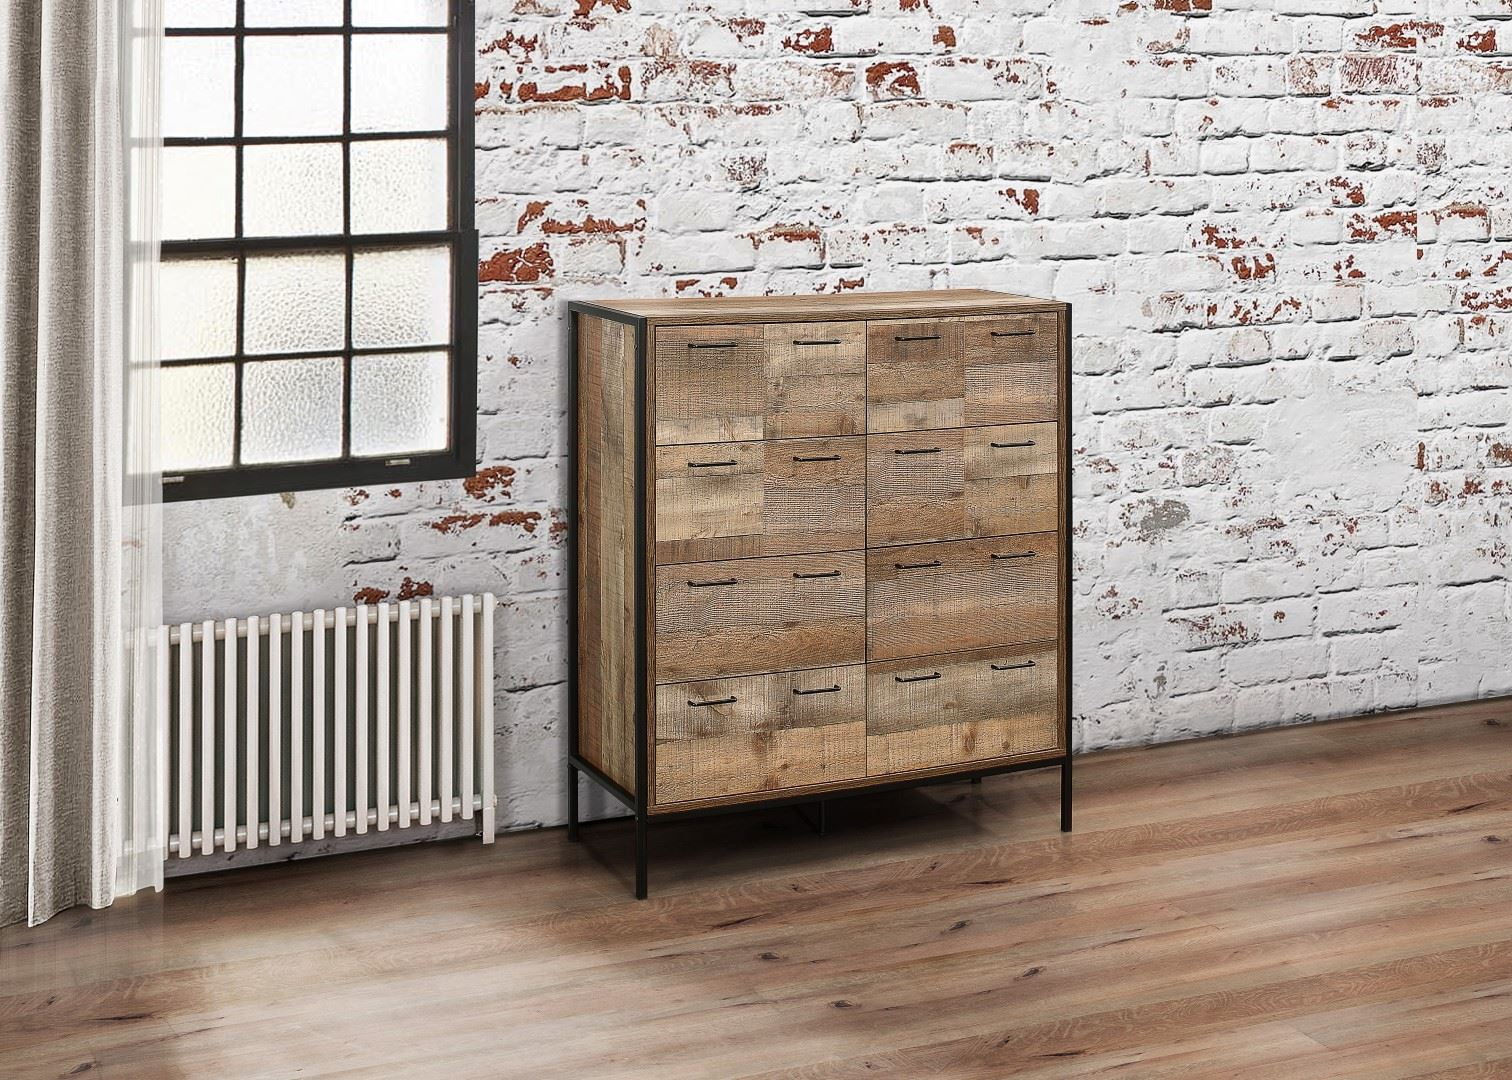 Birlea Urban Industrial Chic 8 Drawer Large Merchant Chest Wood Metal